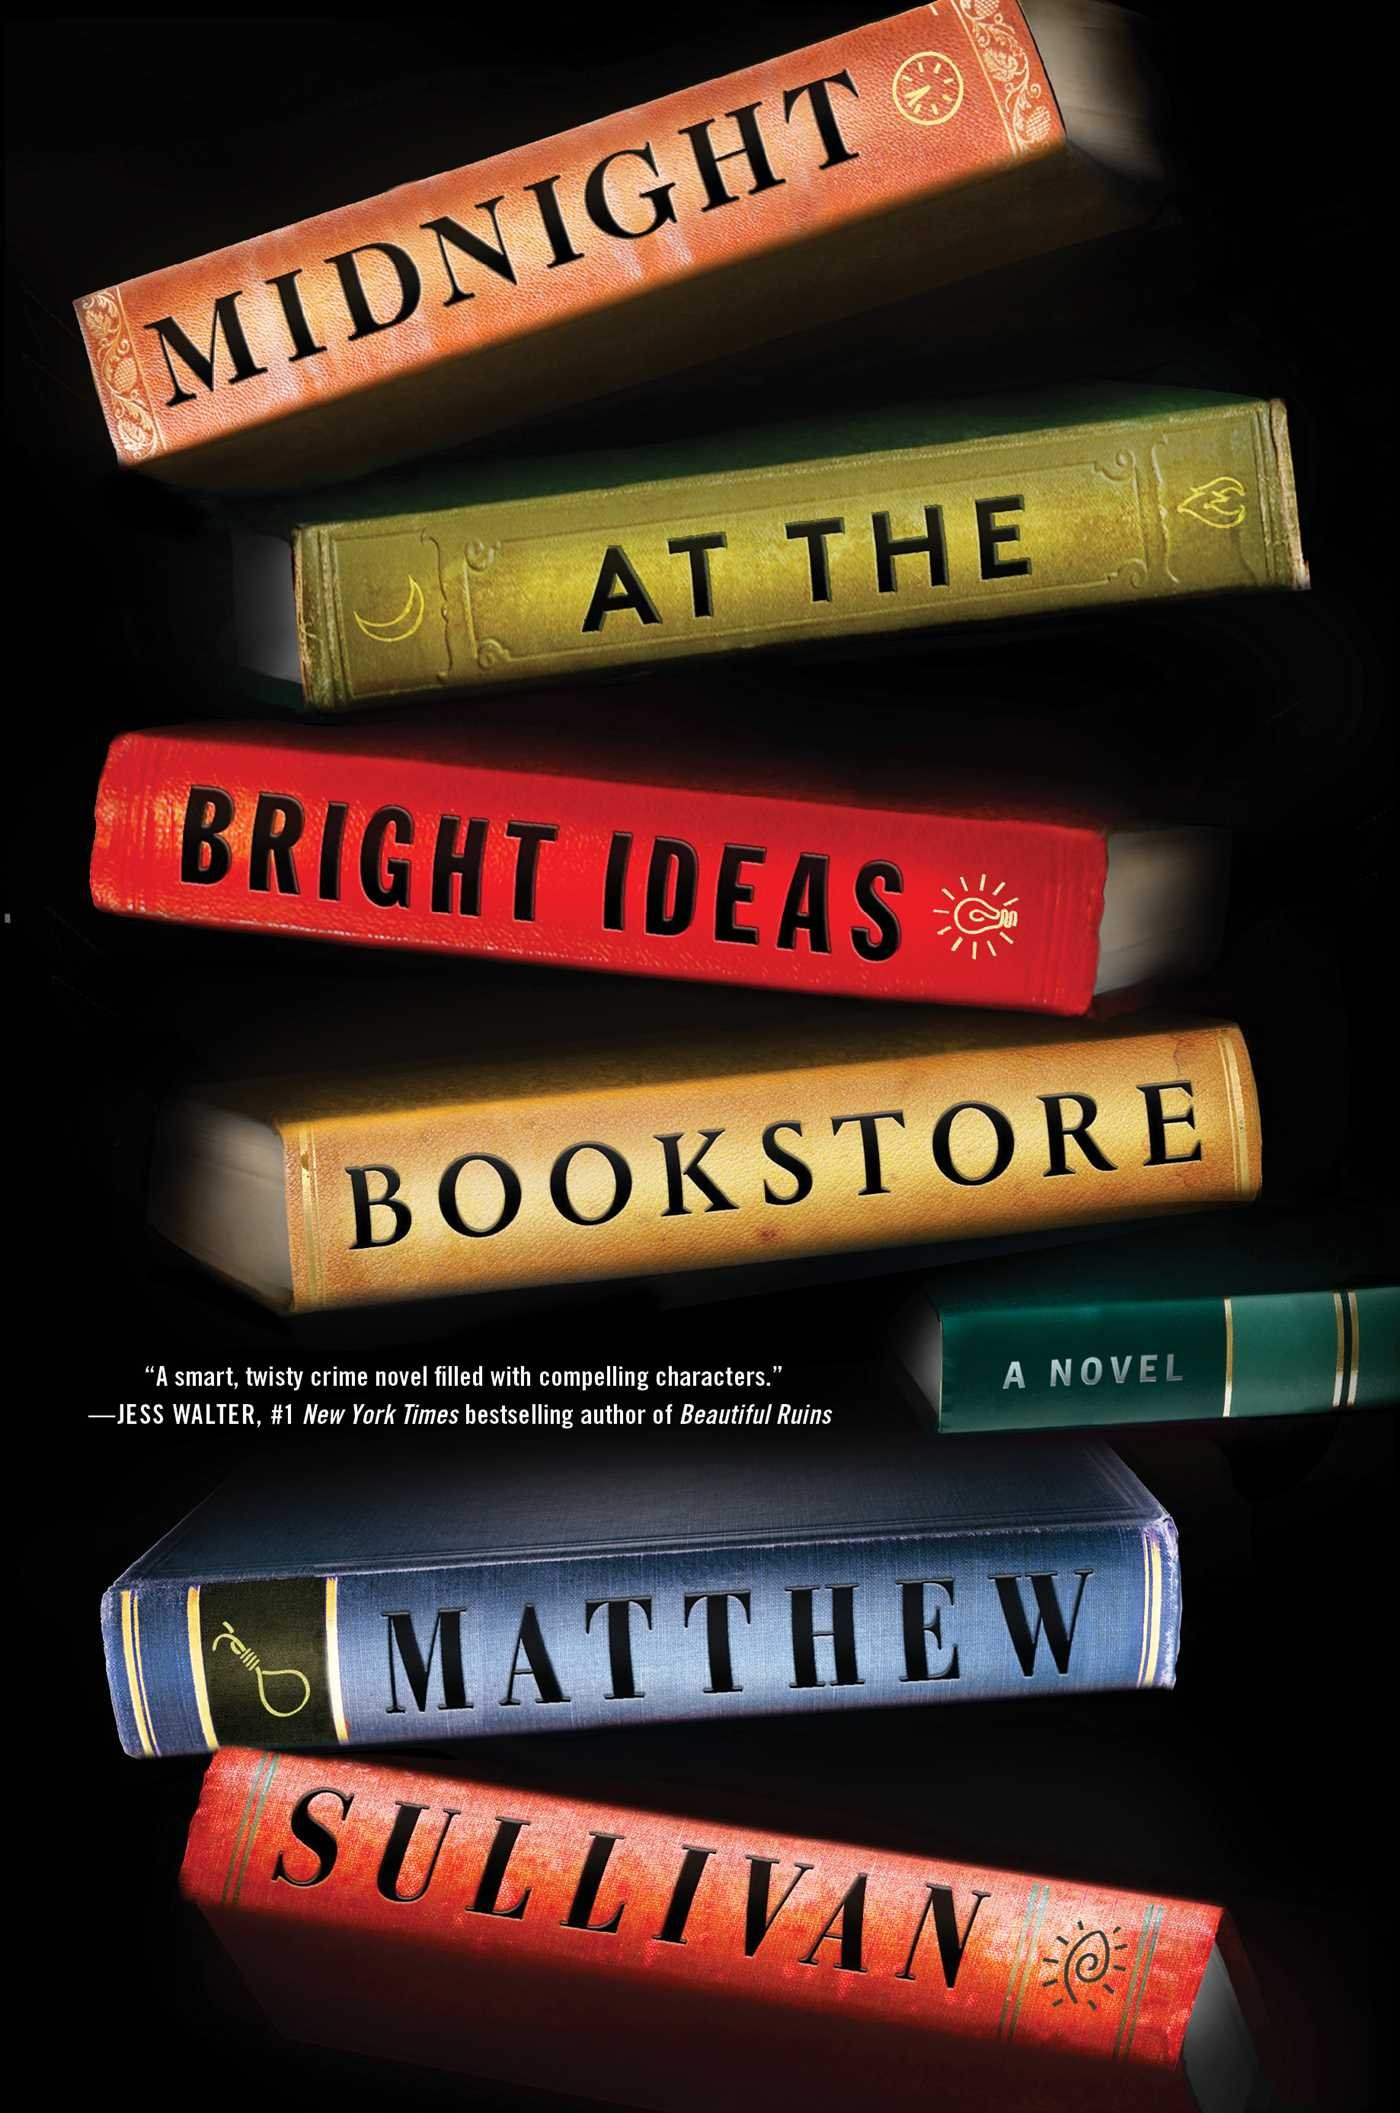 Midnight at the Bright Ideas Bookstore by Matthew J Sullivan